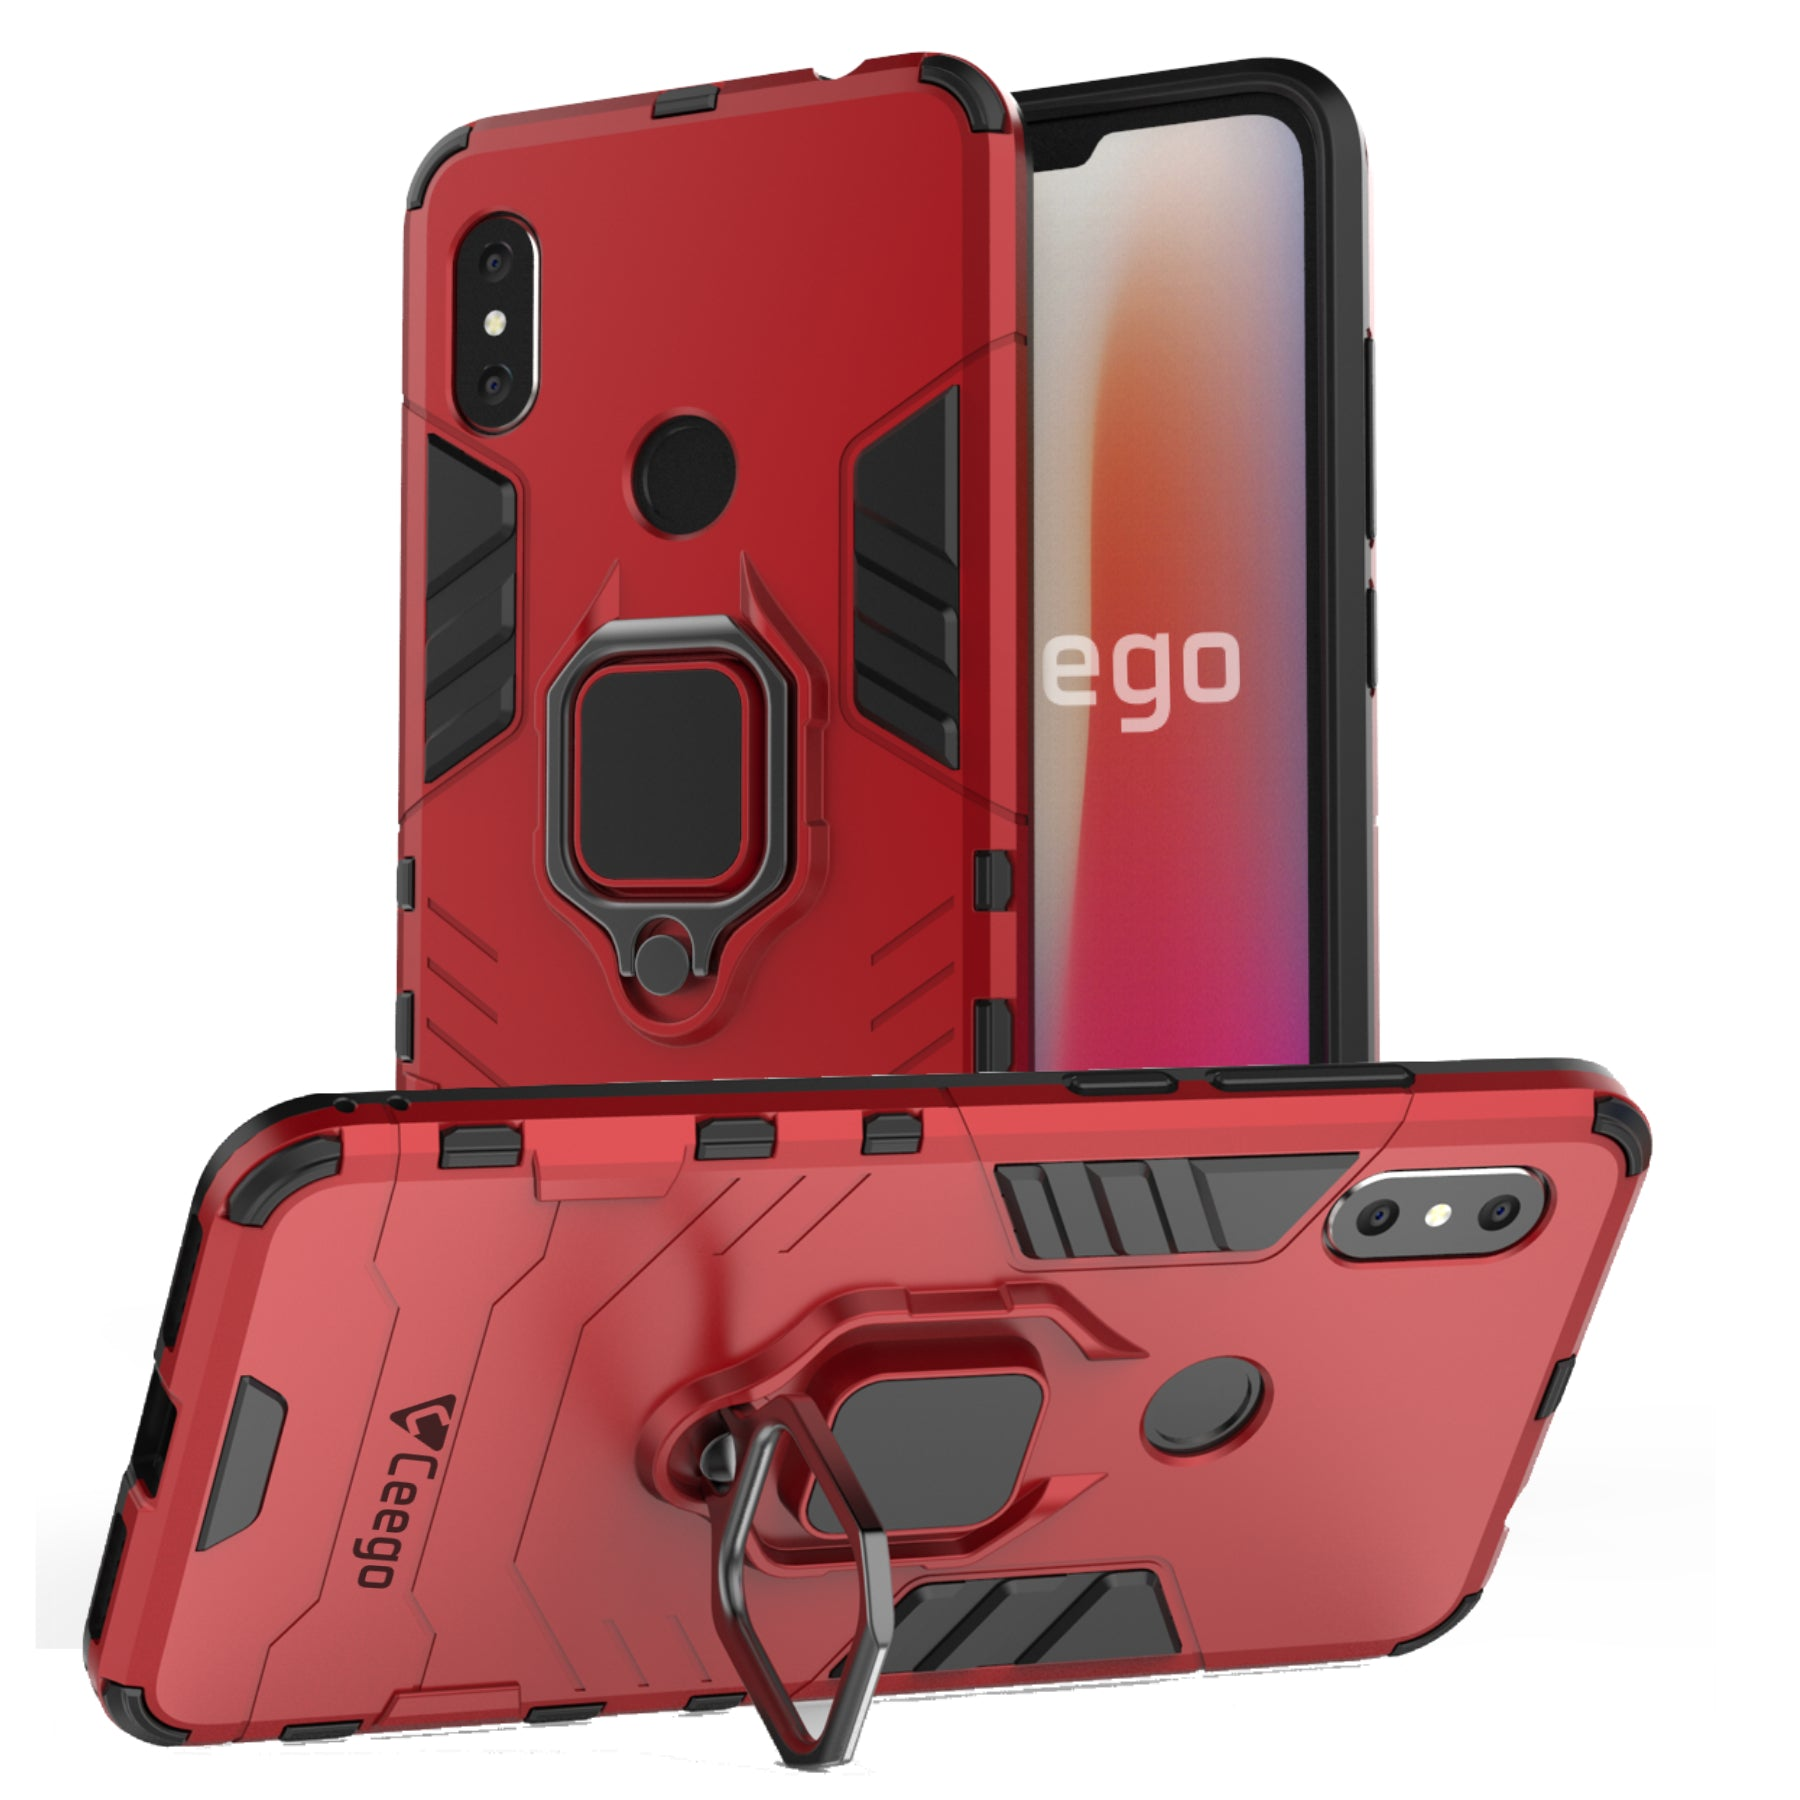 Ceego Stealth Defence Back Case for Xiaomi Redmi Note 6 Pro – Matte Red